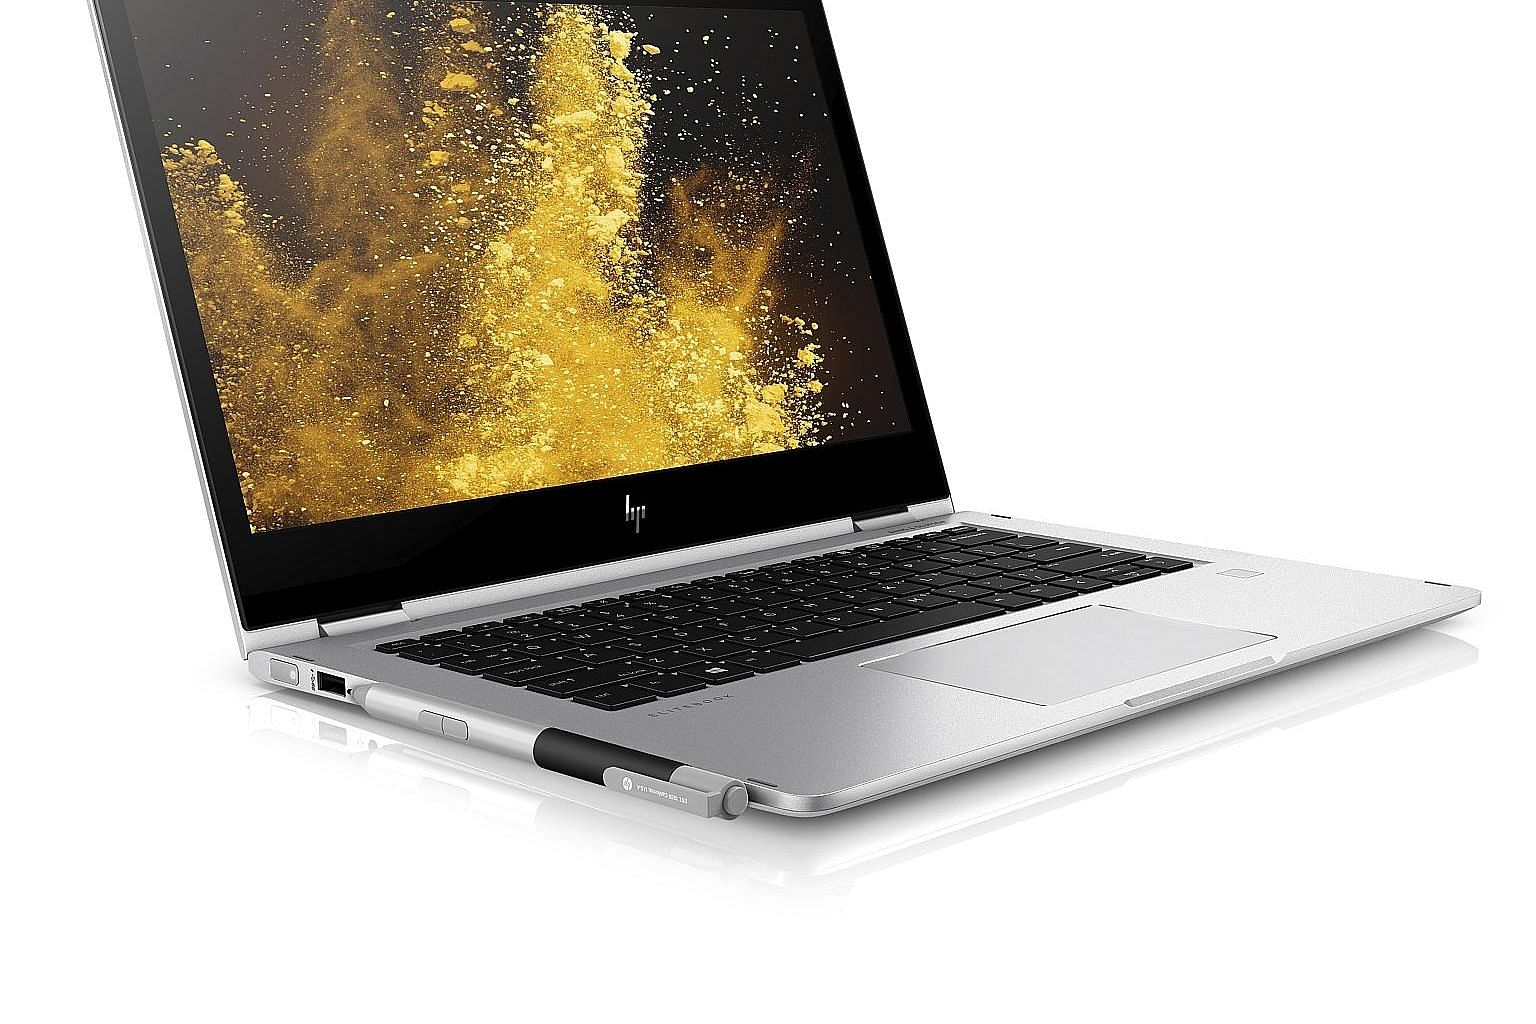 Hit the F2 key and the HP Elitebook x360's screen, dubbed HP Sure View, becomes practically opaque when viewed from the sides.